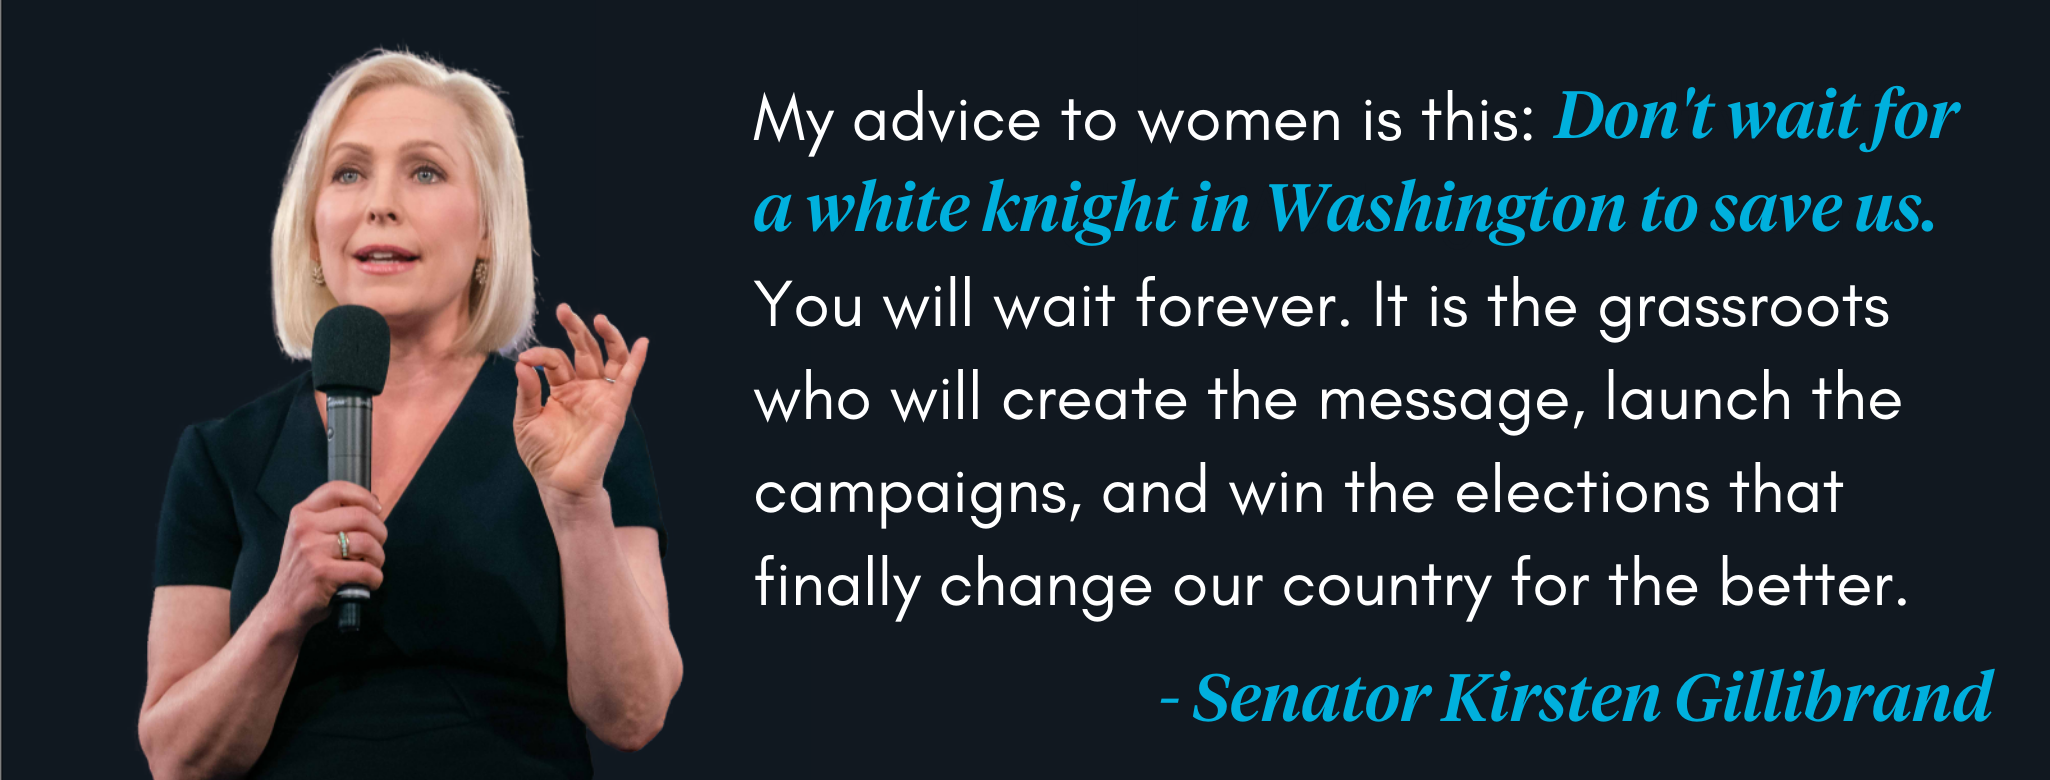 My advice to women is this: Don't wait for a white knight in Washington. You will wait forever.